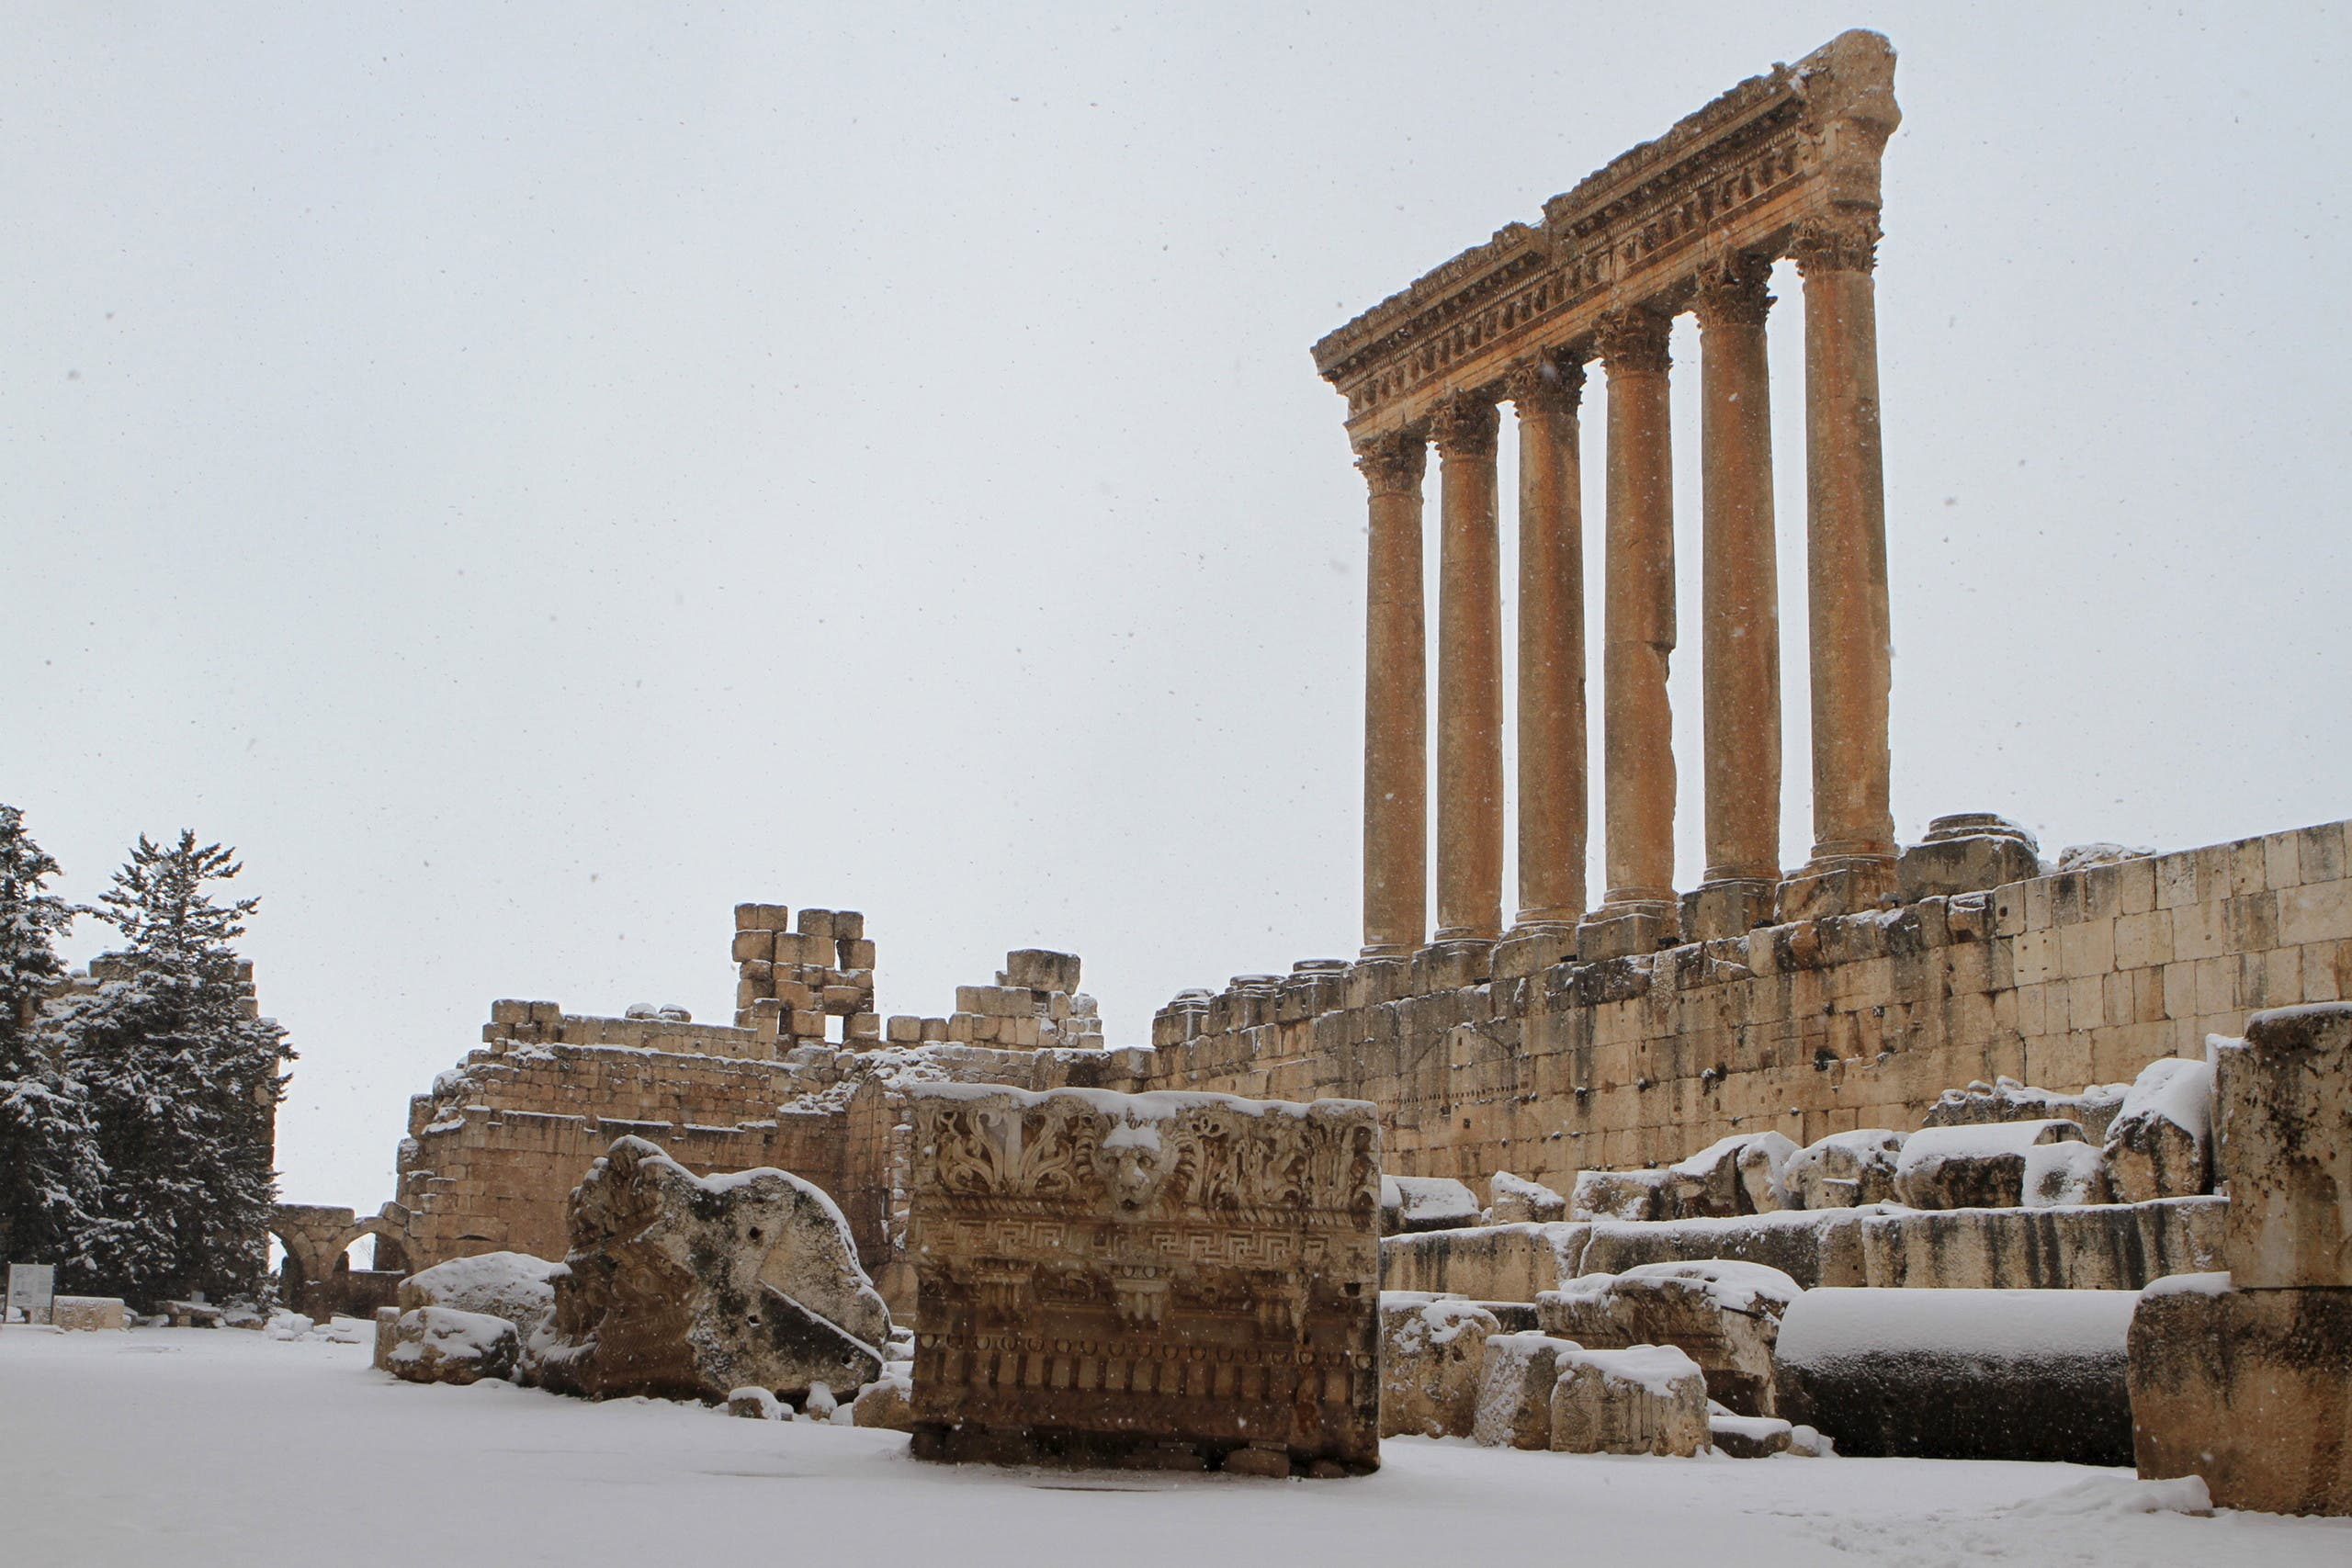 Snow covers the historical ruins of Baalbek in eastern Lebanon, January 25, 2016. (Reuters)